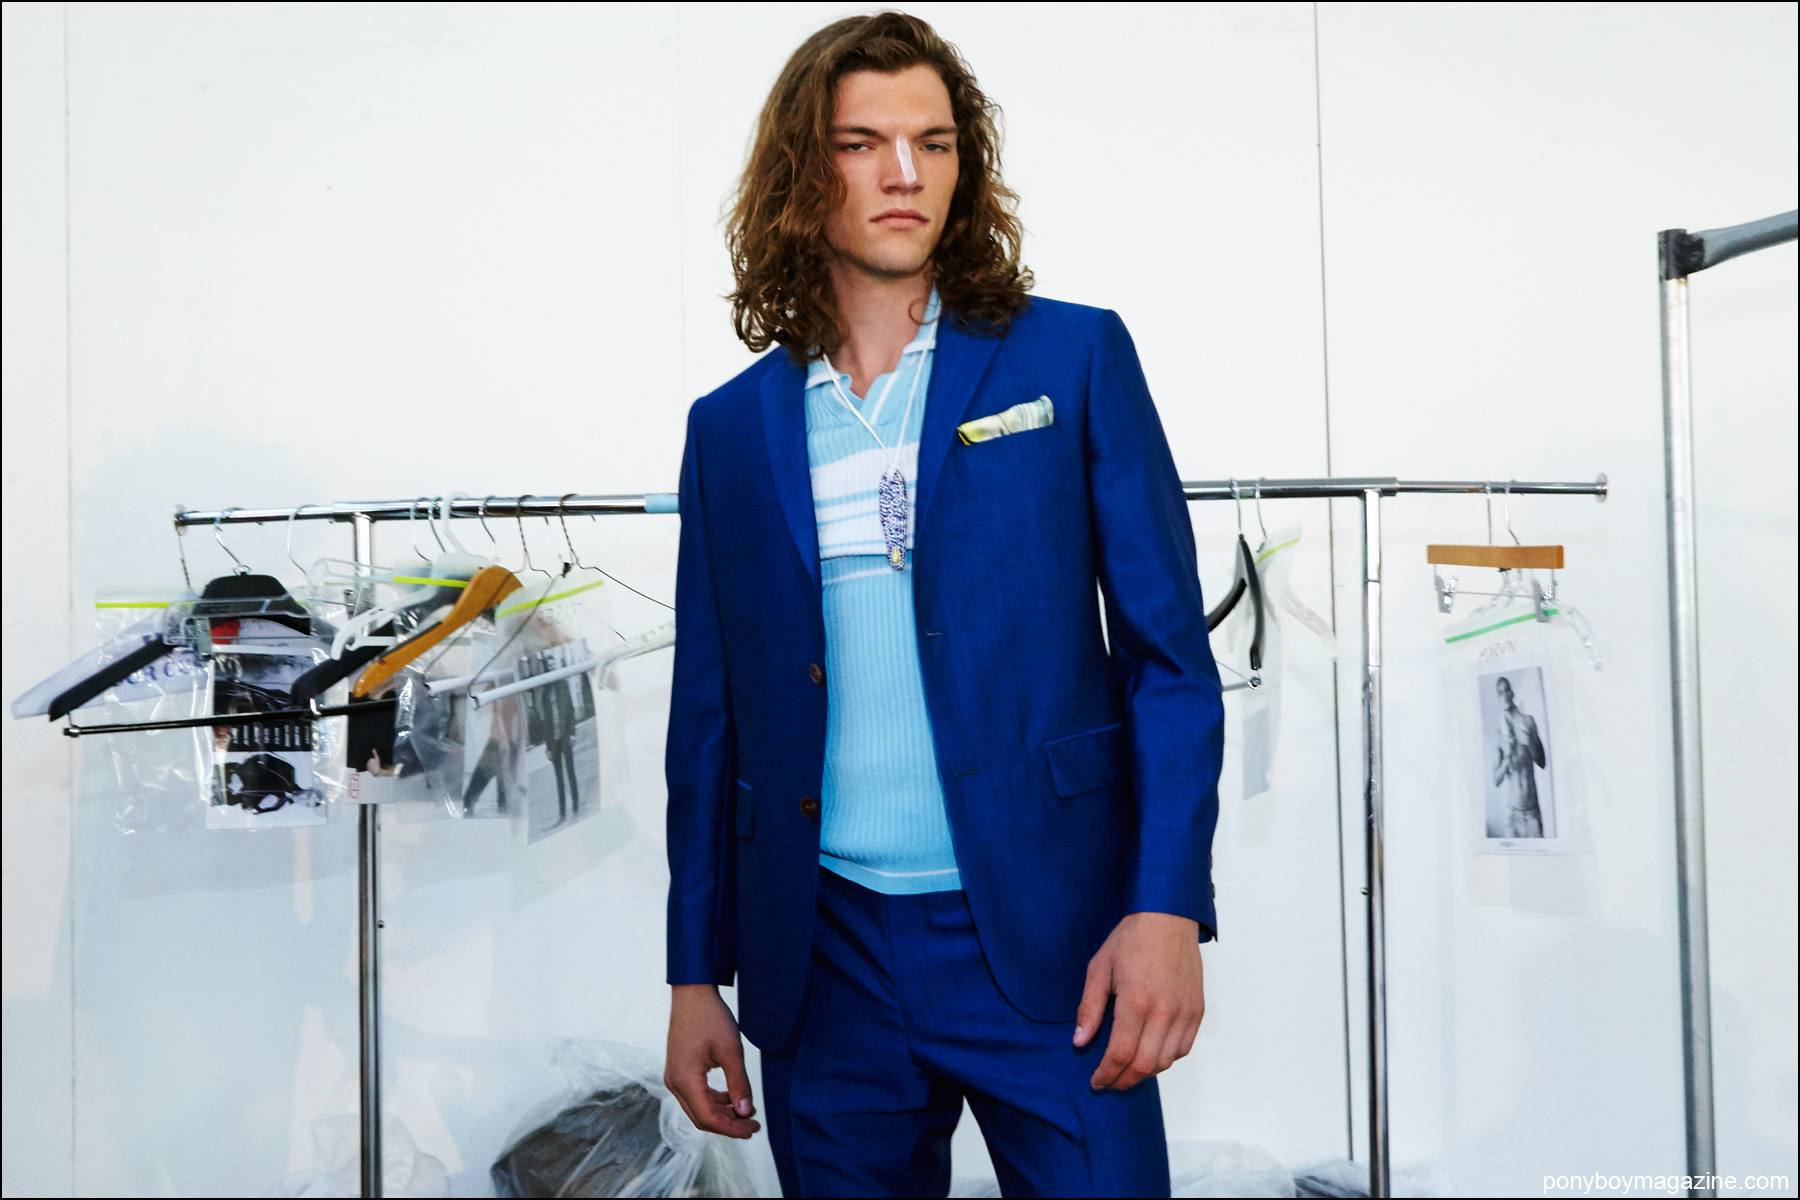 A male model in a blue David Hart S/S17 suit, photographed backstage by Alexander Thompson for Ponyboy magazine NY.